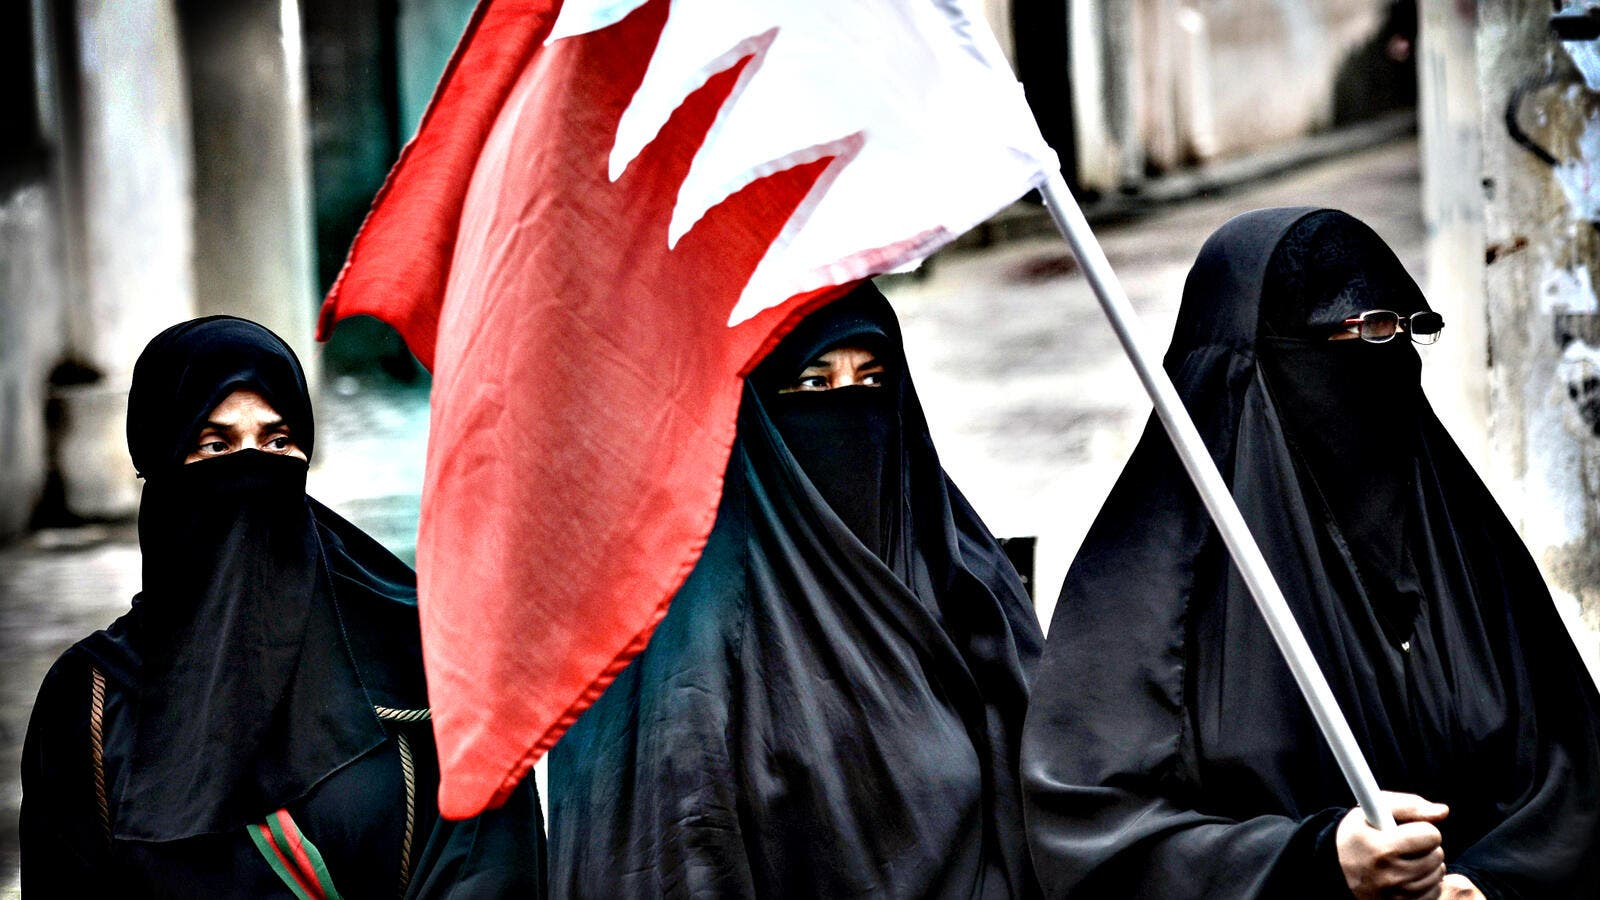 Using the Muslim sect to describe the actions of activists in Bahrain is problematic. (AFP/File)